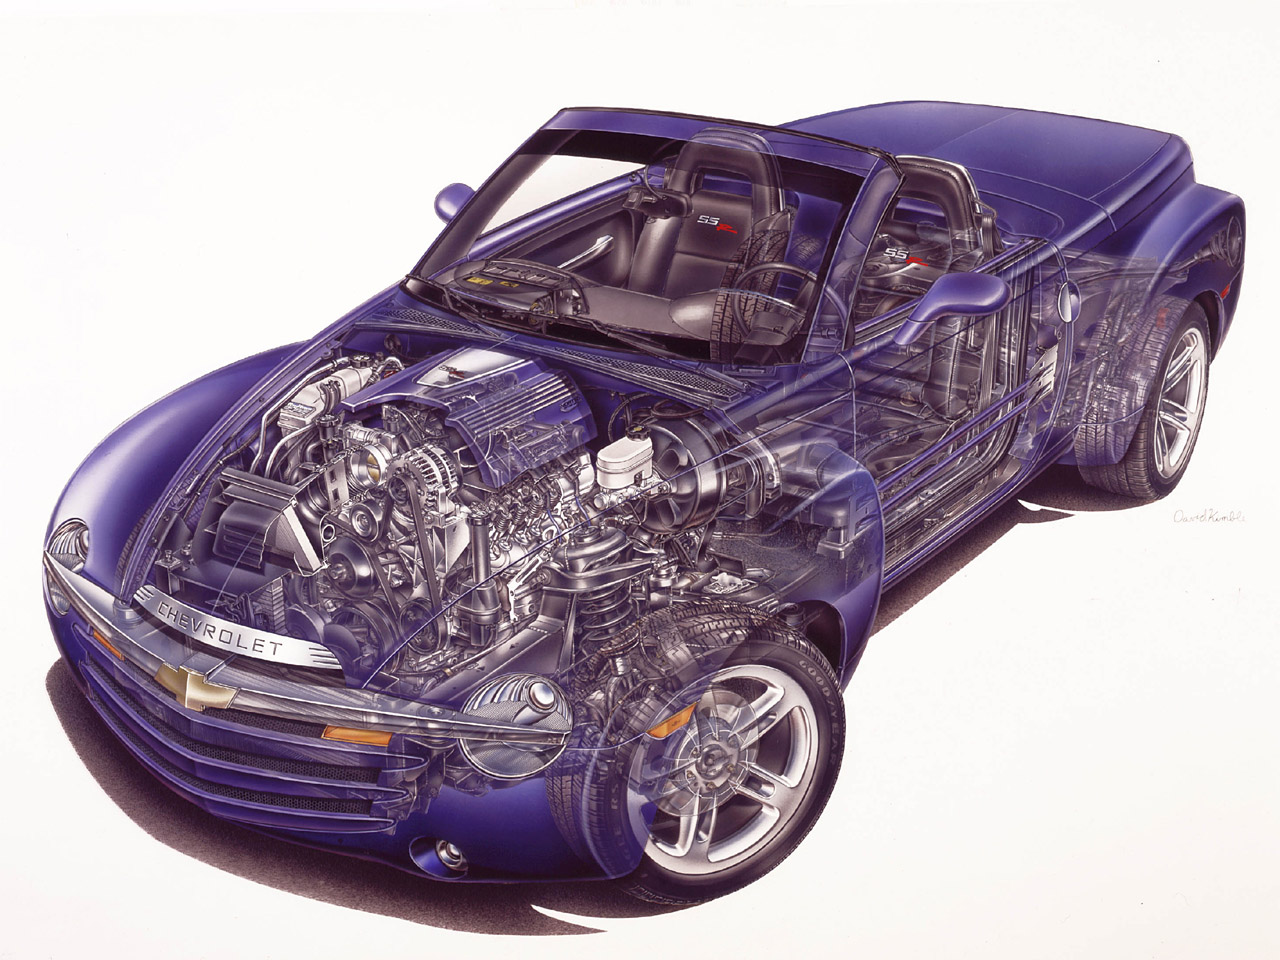 2003 Chevy SSR Signature Series Cutaway Illustration. X03CT_SR078